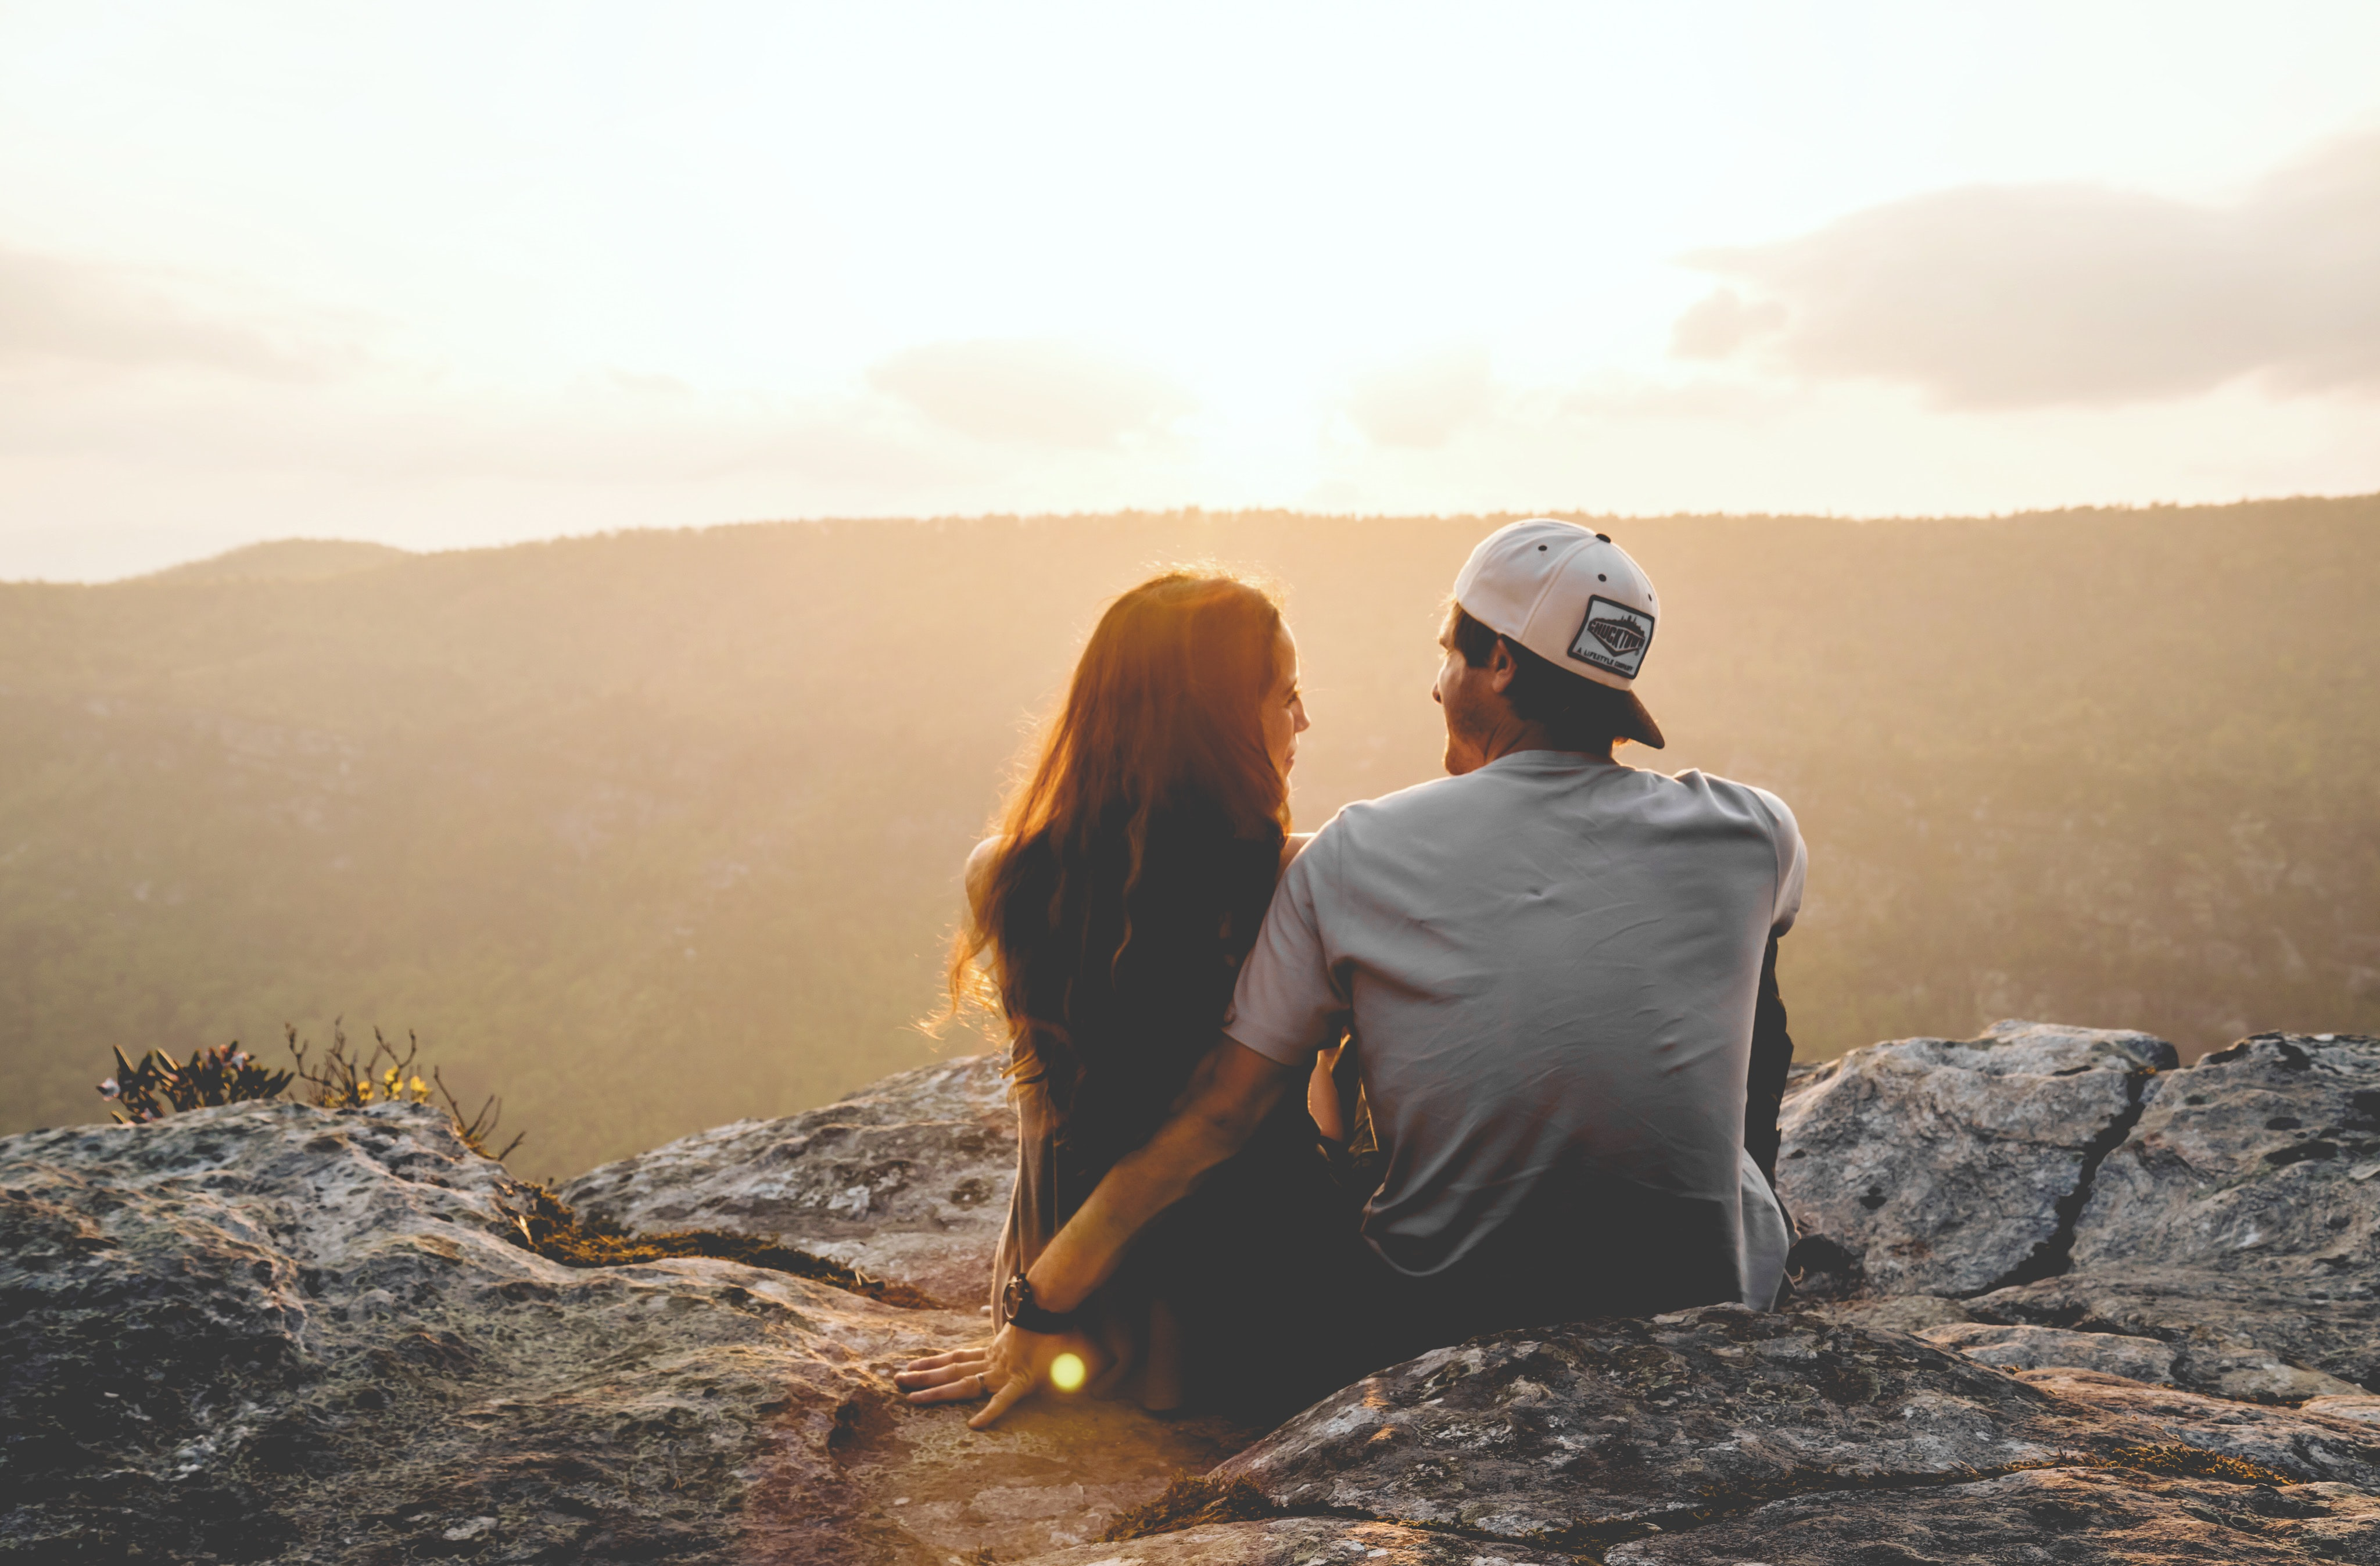 Couple sitting on a rocky mountain looking at each other as sunset colors the sky